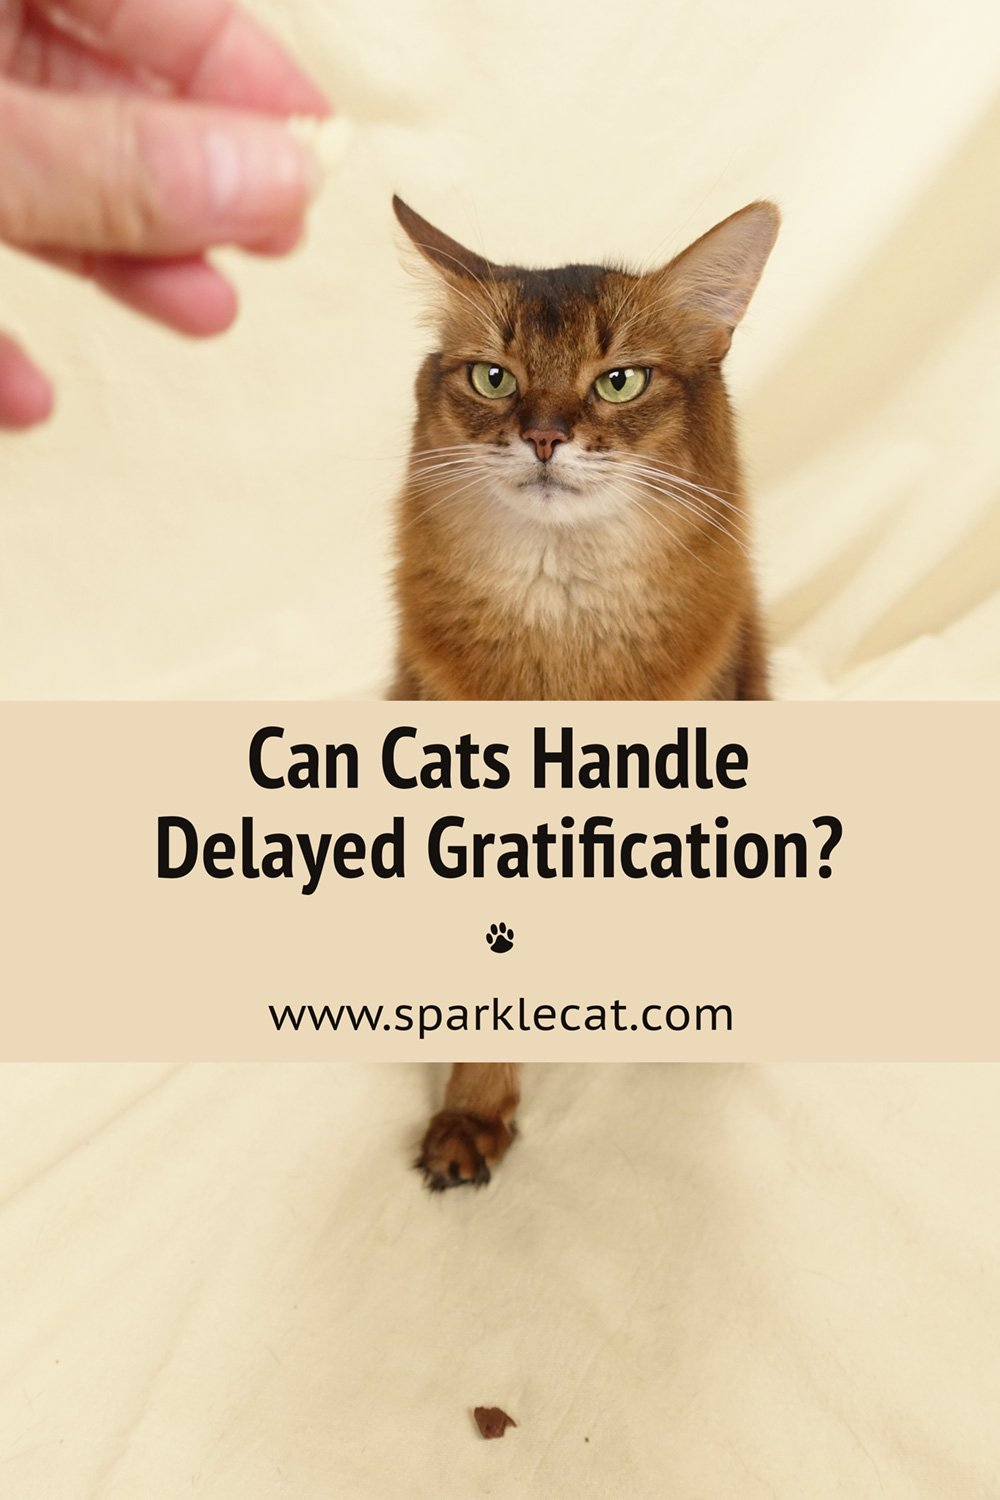 Are Cats as Smart as Cuttlefish... or Preschoolers? An Experiment on Delayed Gratification